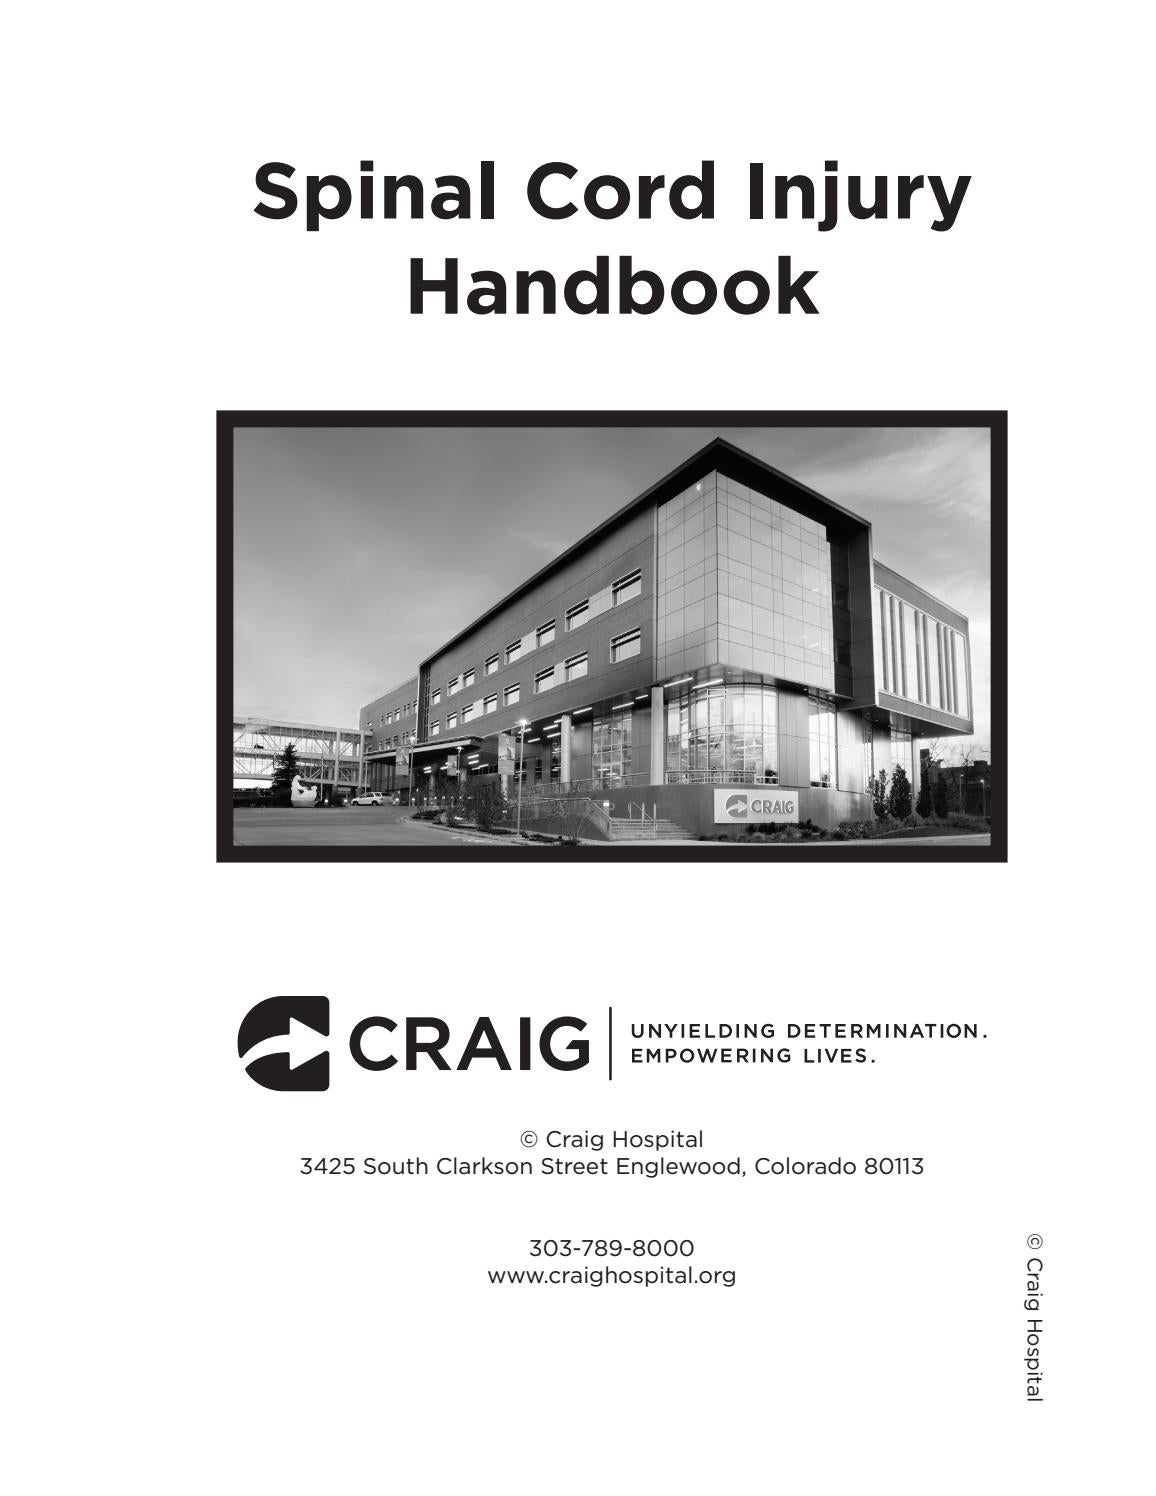 Spinal Cord Injury Handbook By Craig Hospital Issuu Electrical Building Wiring 8211 Safety Methods And Materials